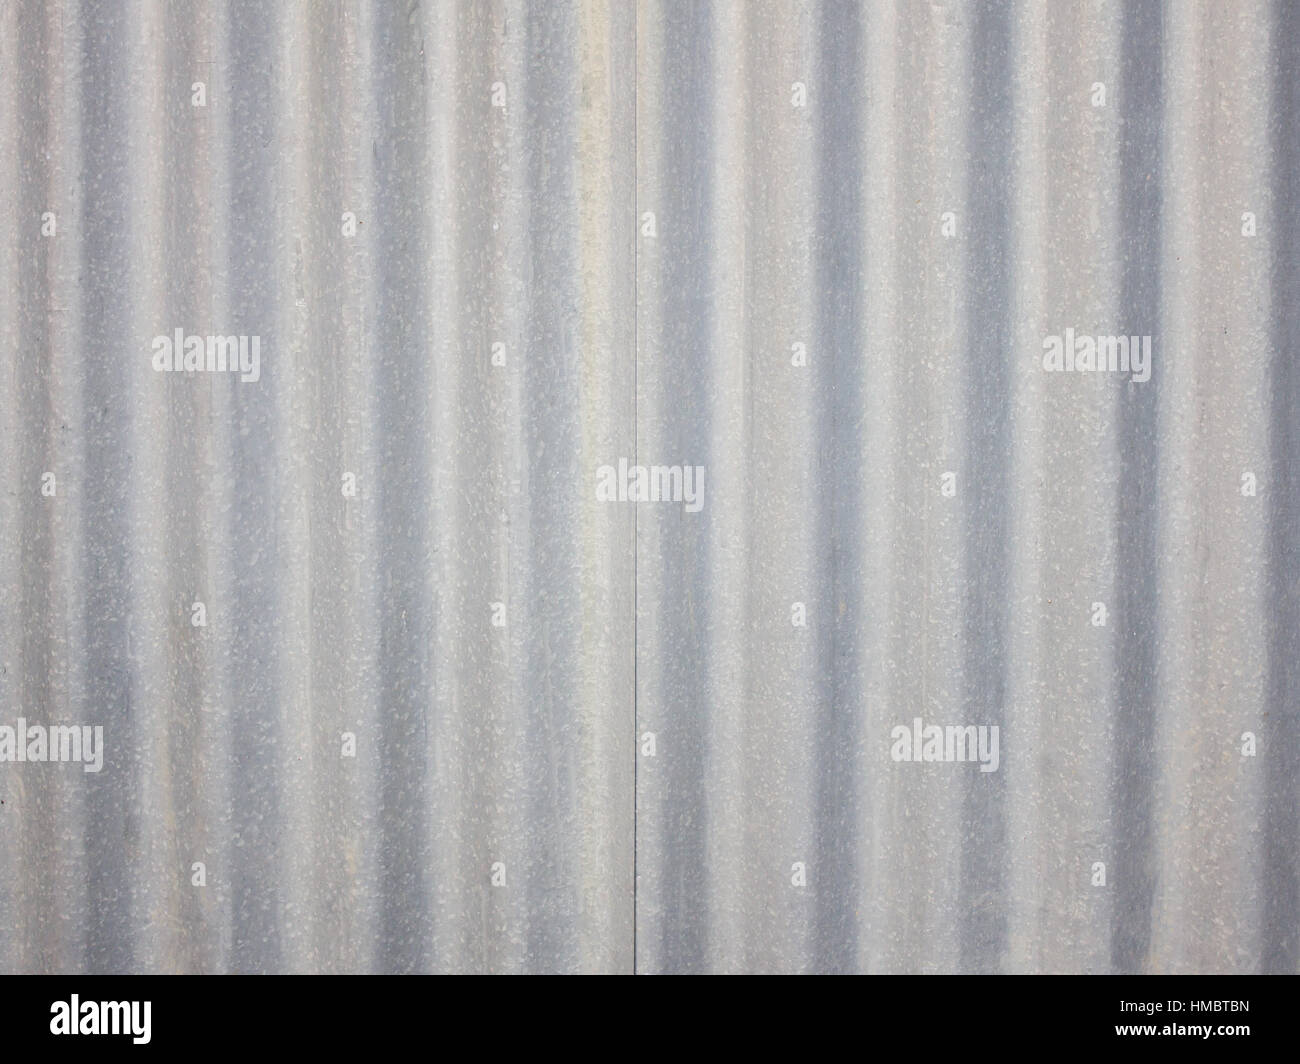 Corrugated galvanized sheet stell texture for background - Stock Image